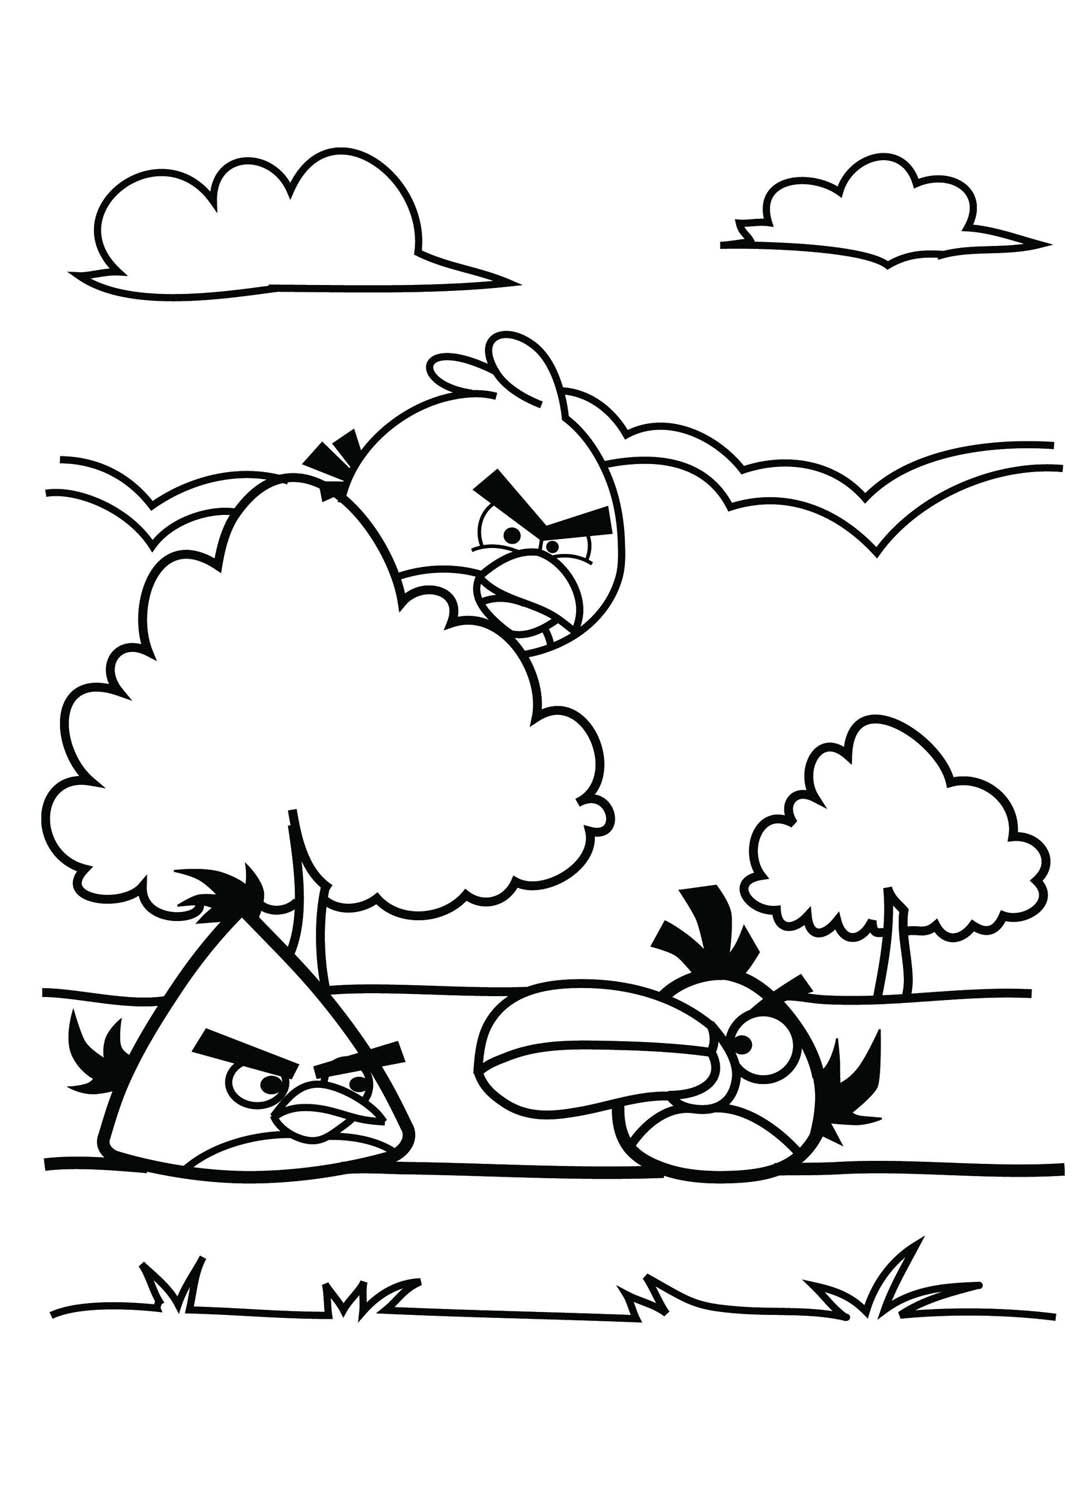 free bird coloring pages angry birds to print for free angry birds kids coloring pages bird coloring free